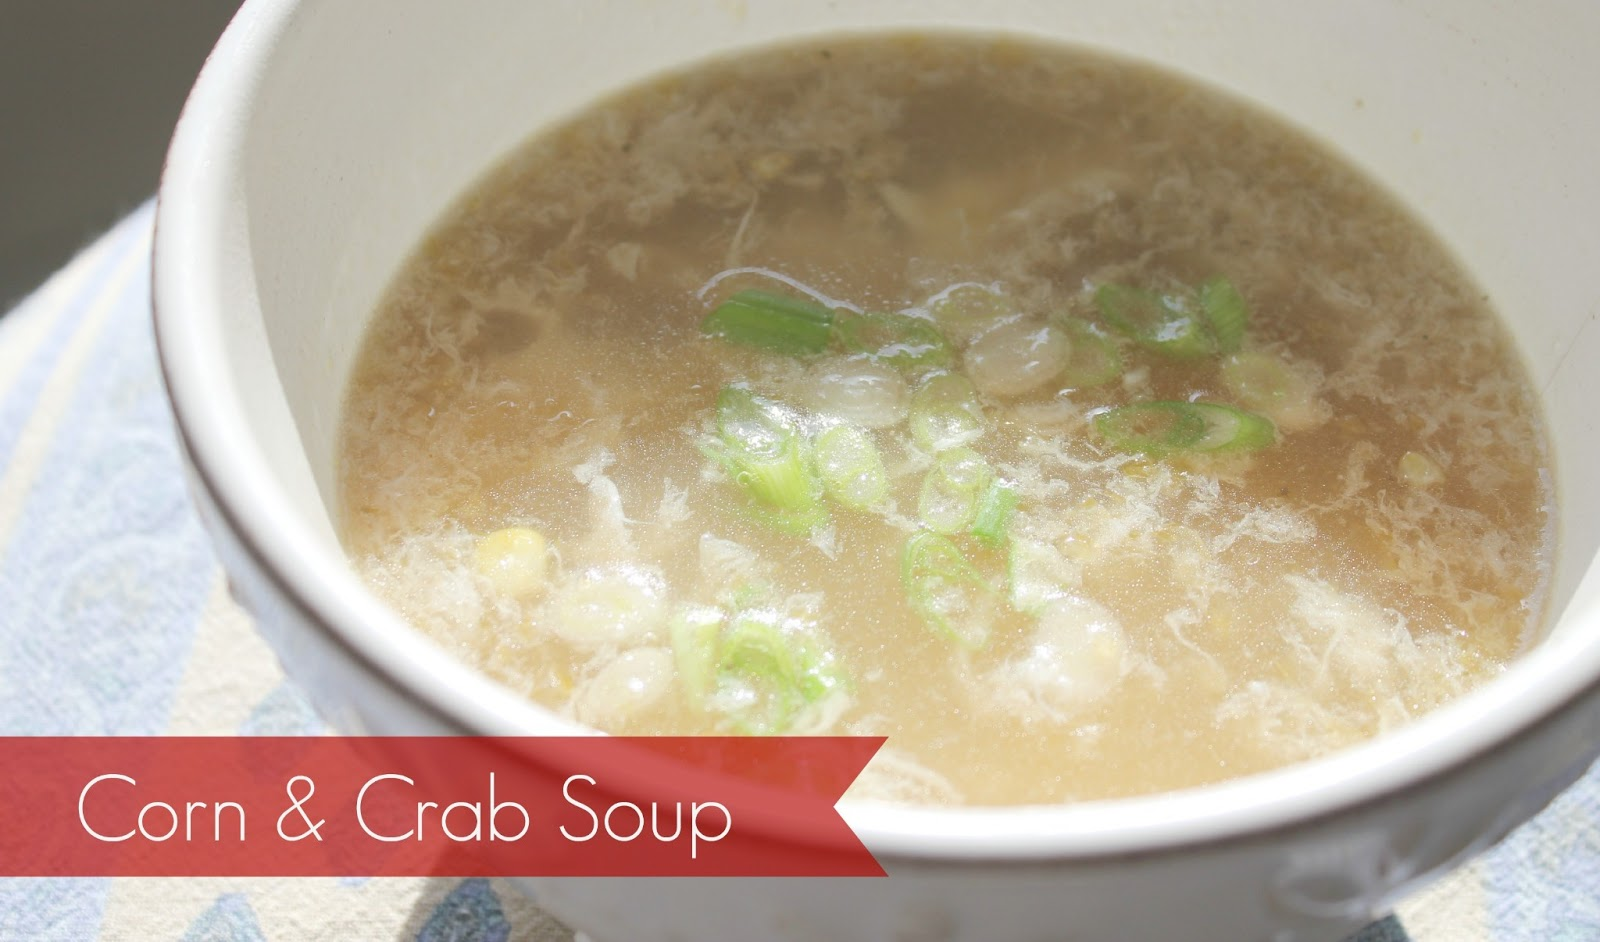 Marie's Pastiche: Recipe - Corn & Crab Soup